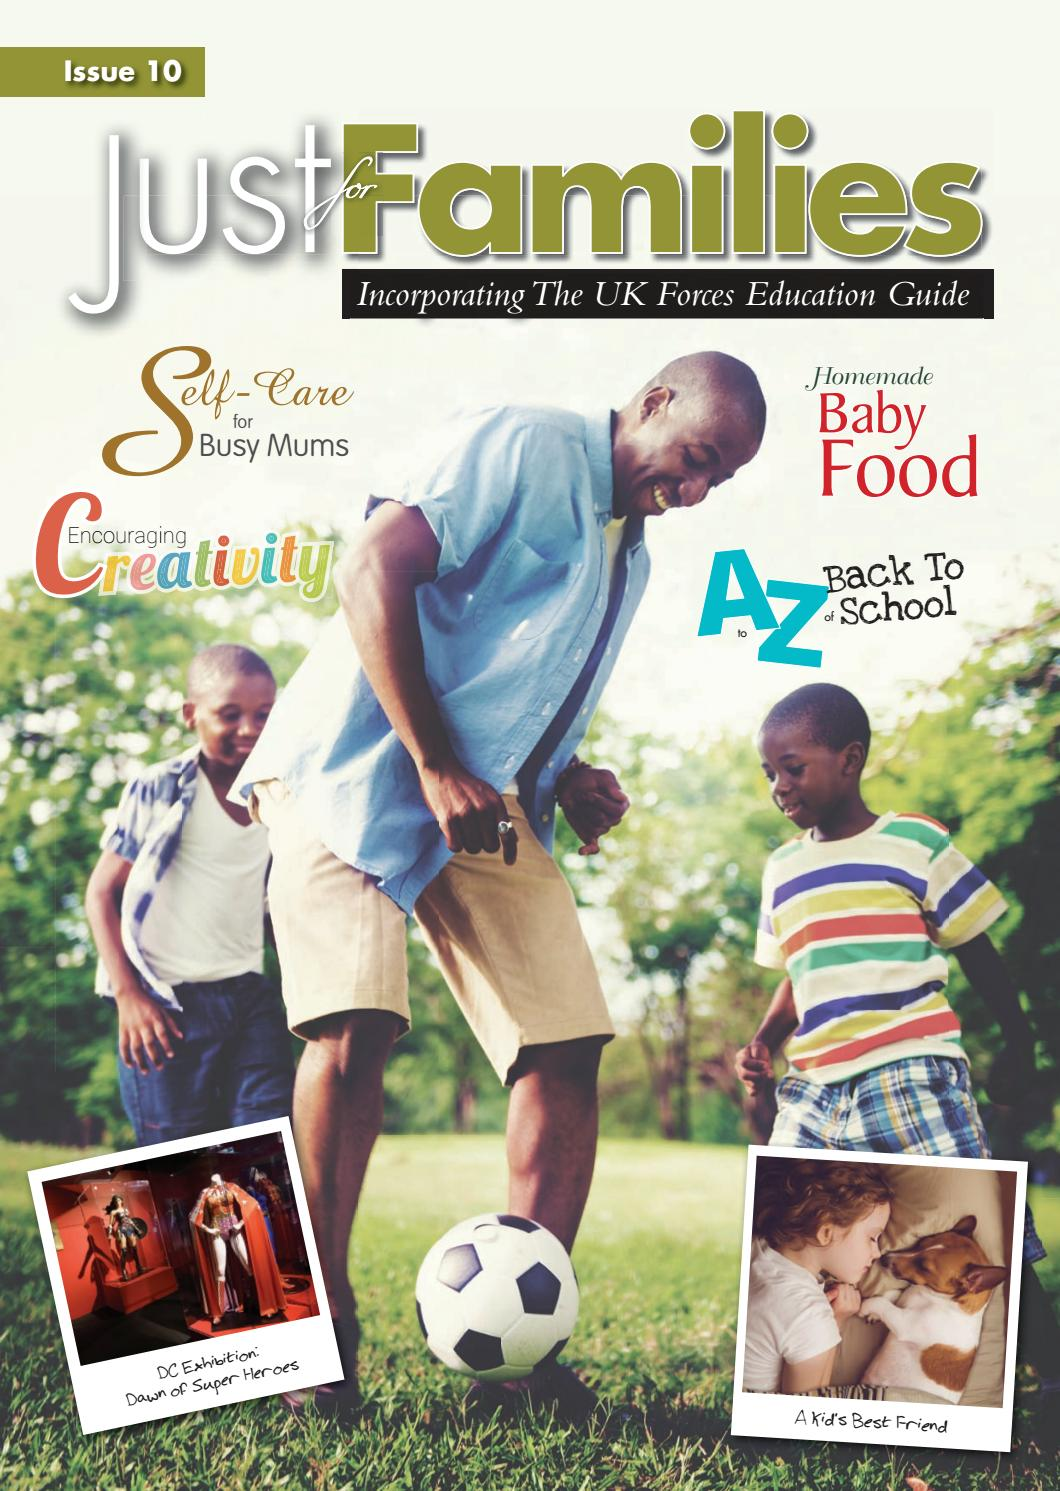 1cc51daad43 Just for Families Issue 10 by Forces & Corporate Publishing Ltd - issuu